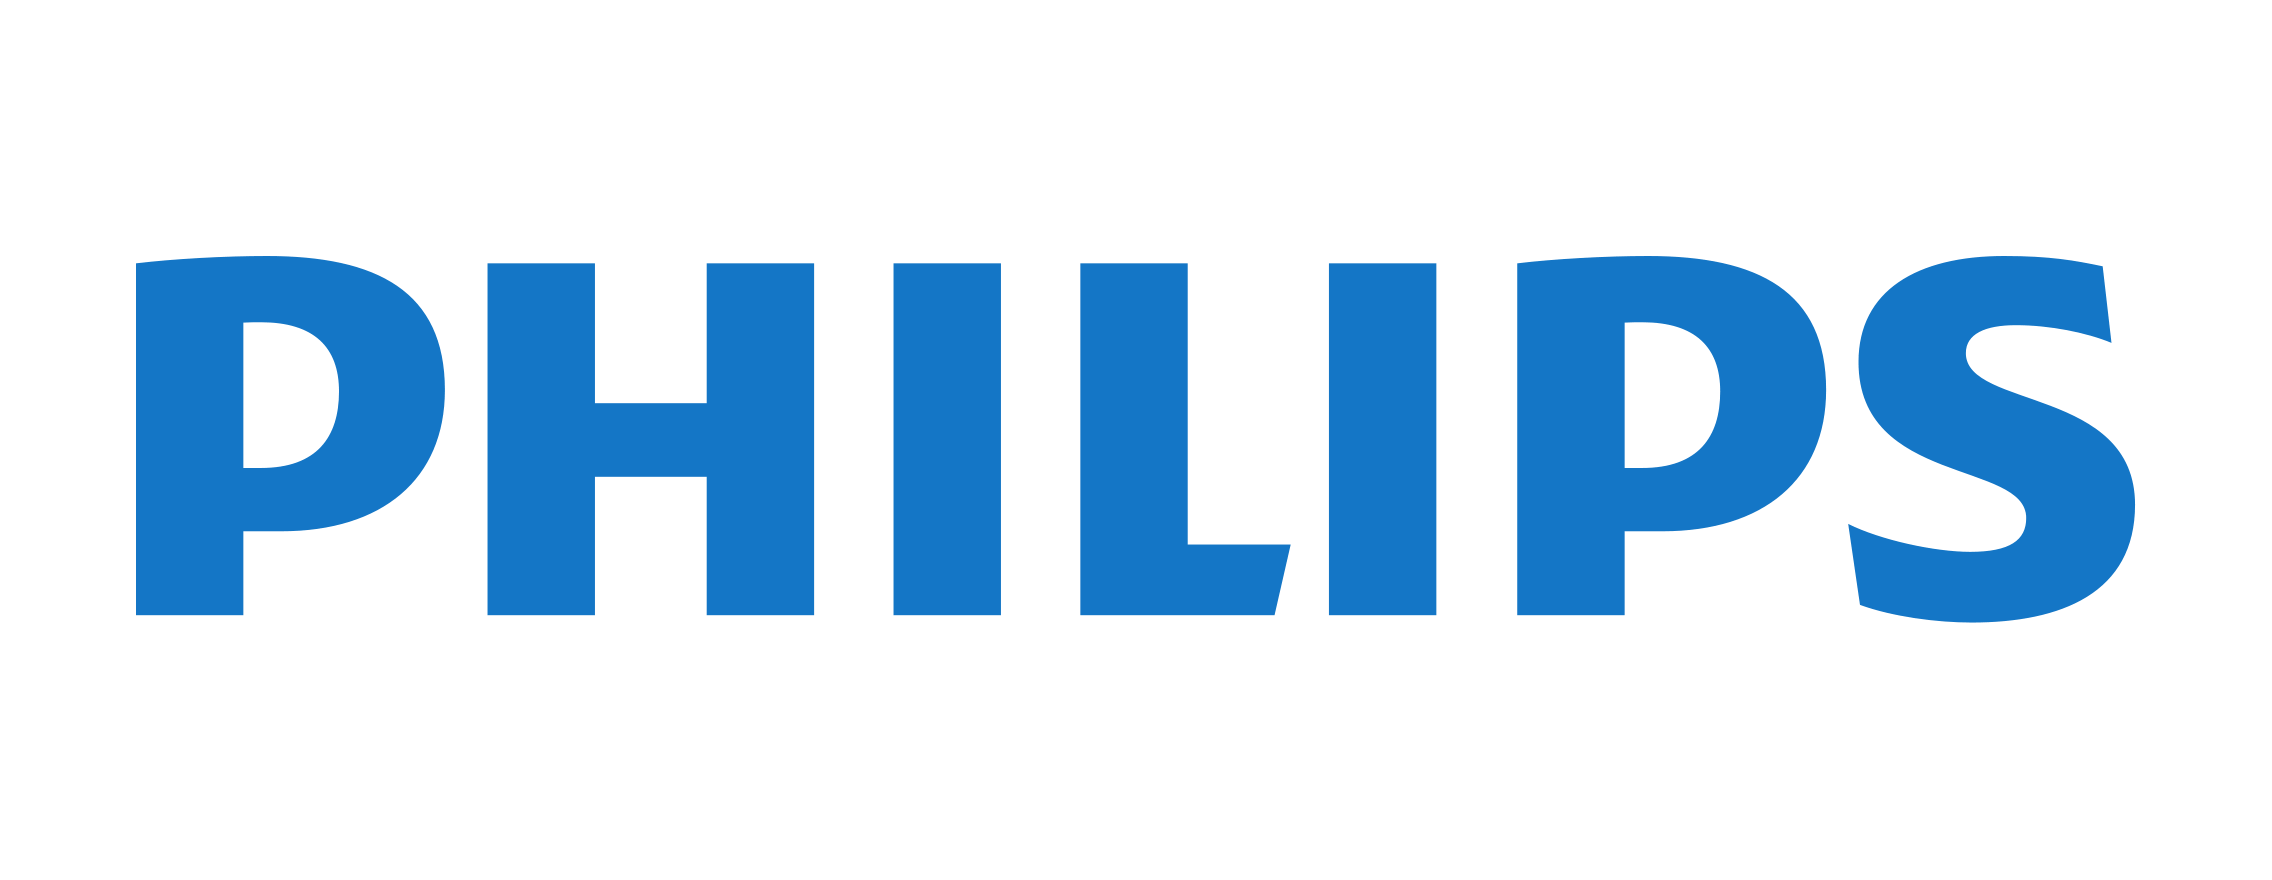 hervidores PHILIPS